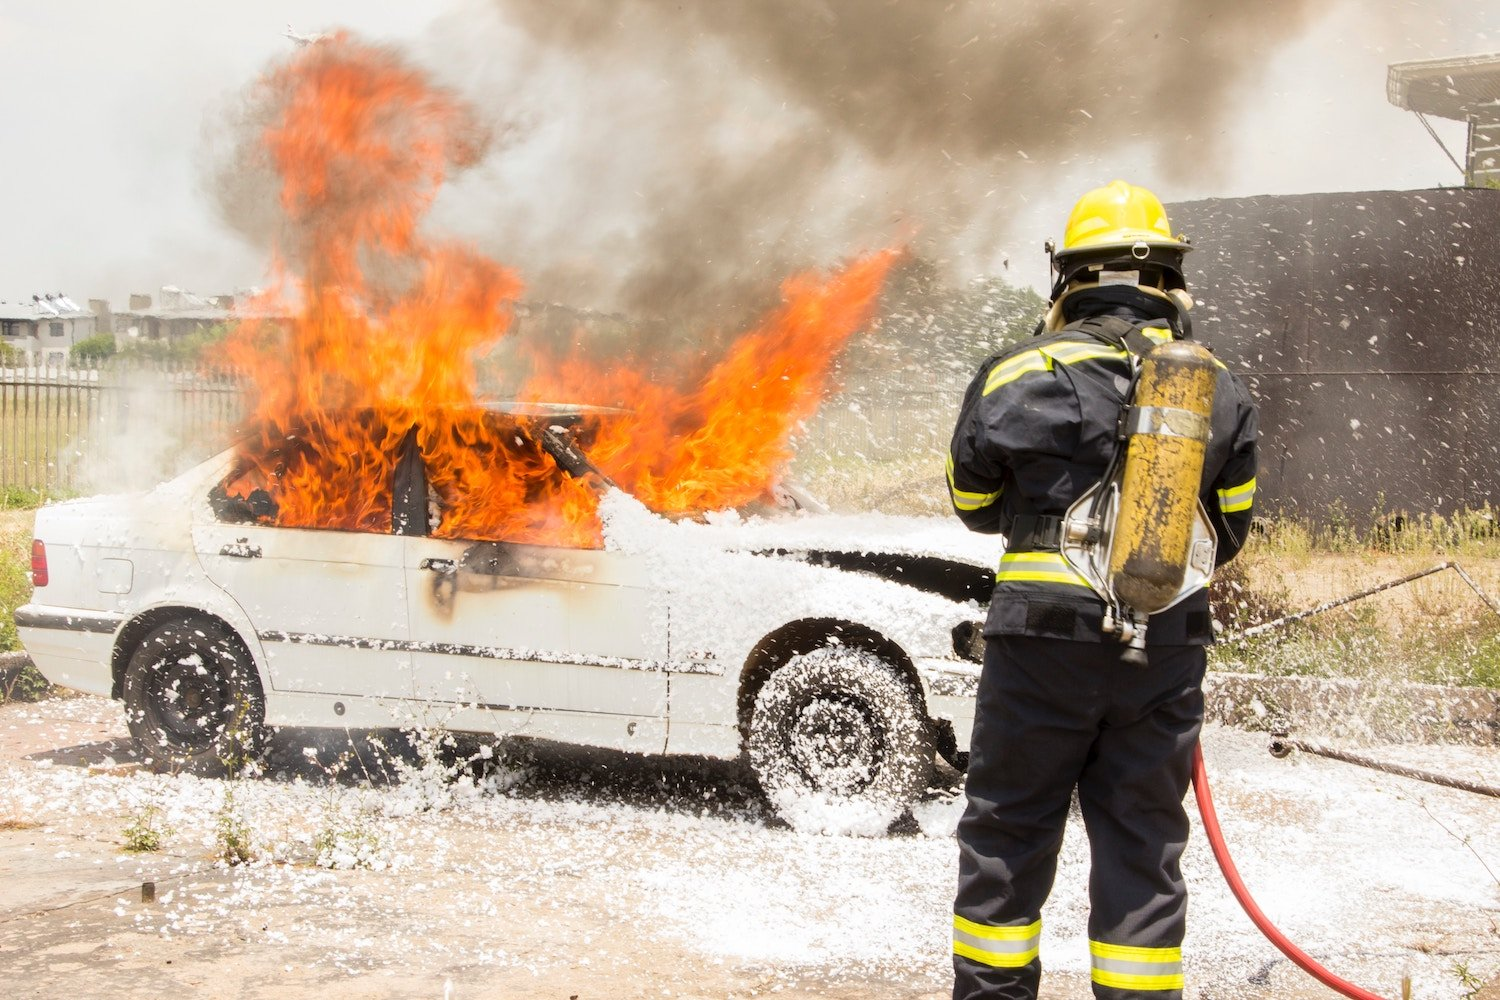 firefighter putting out burning car